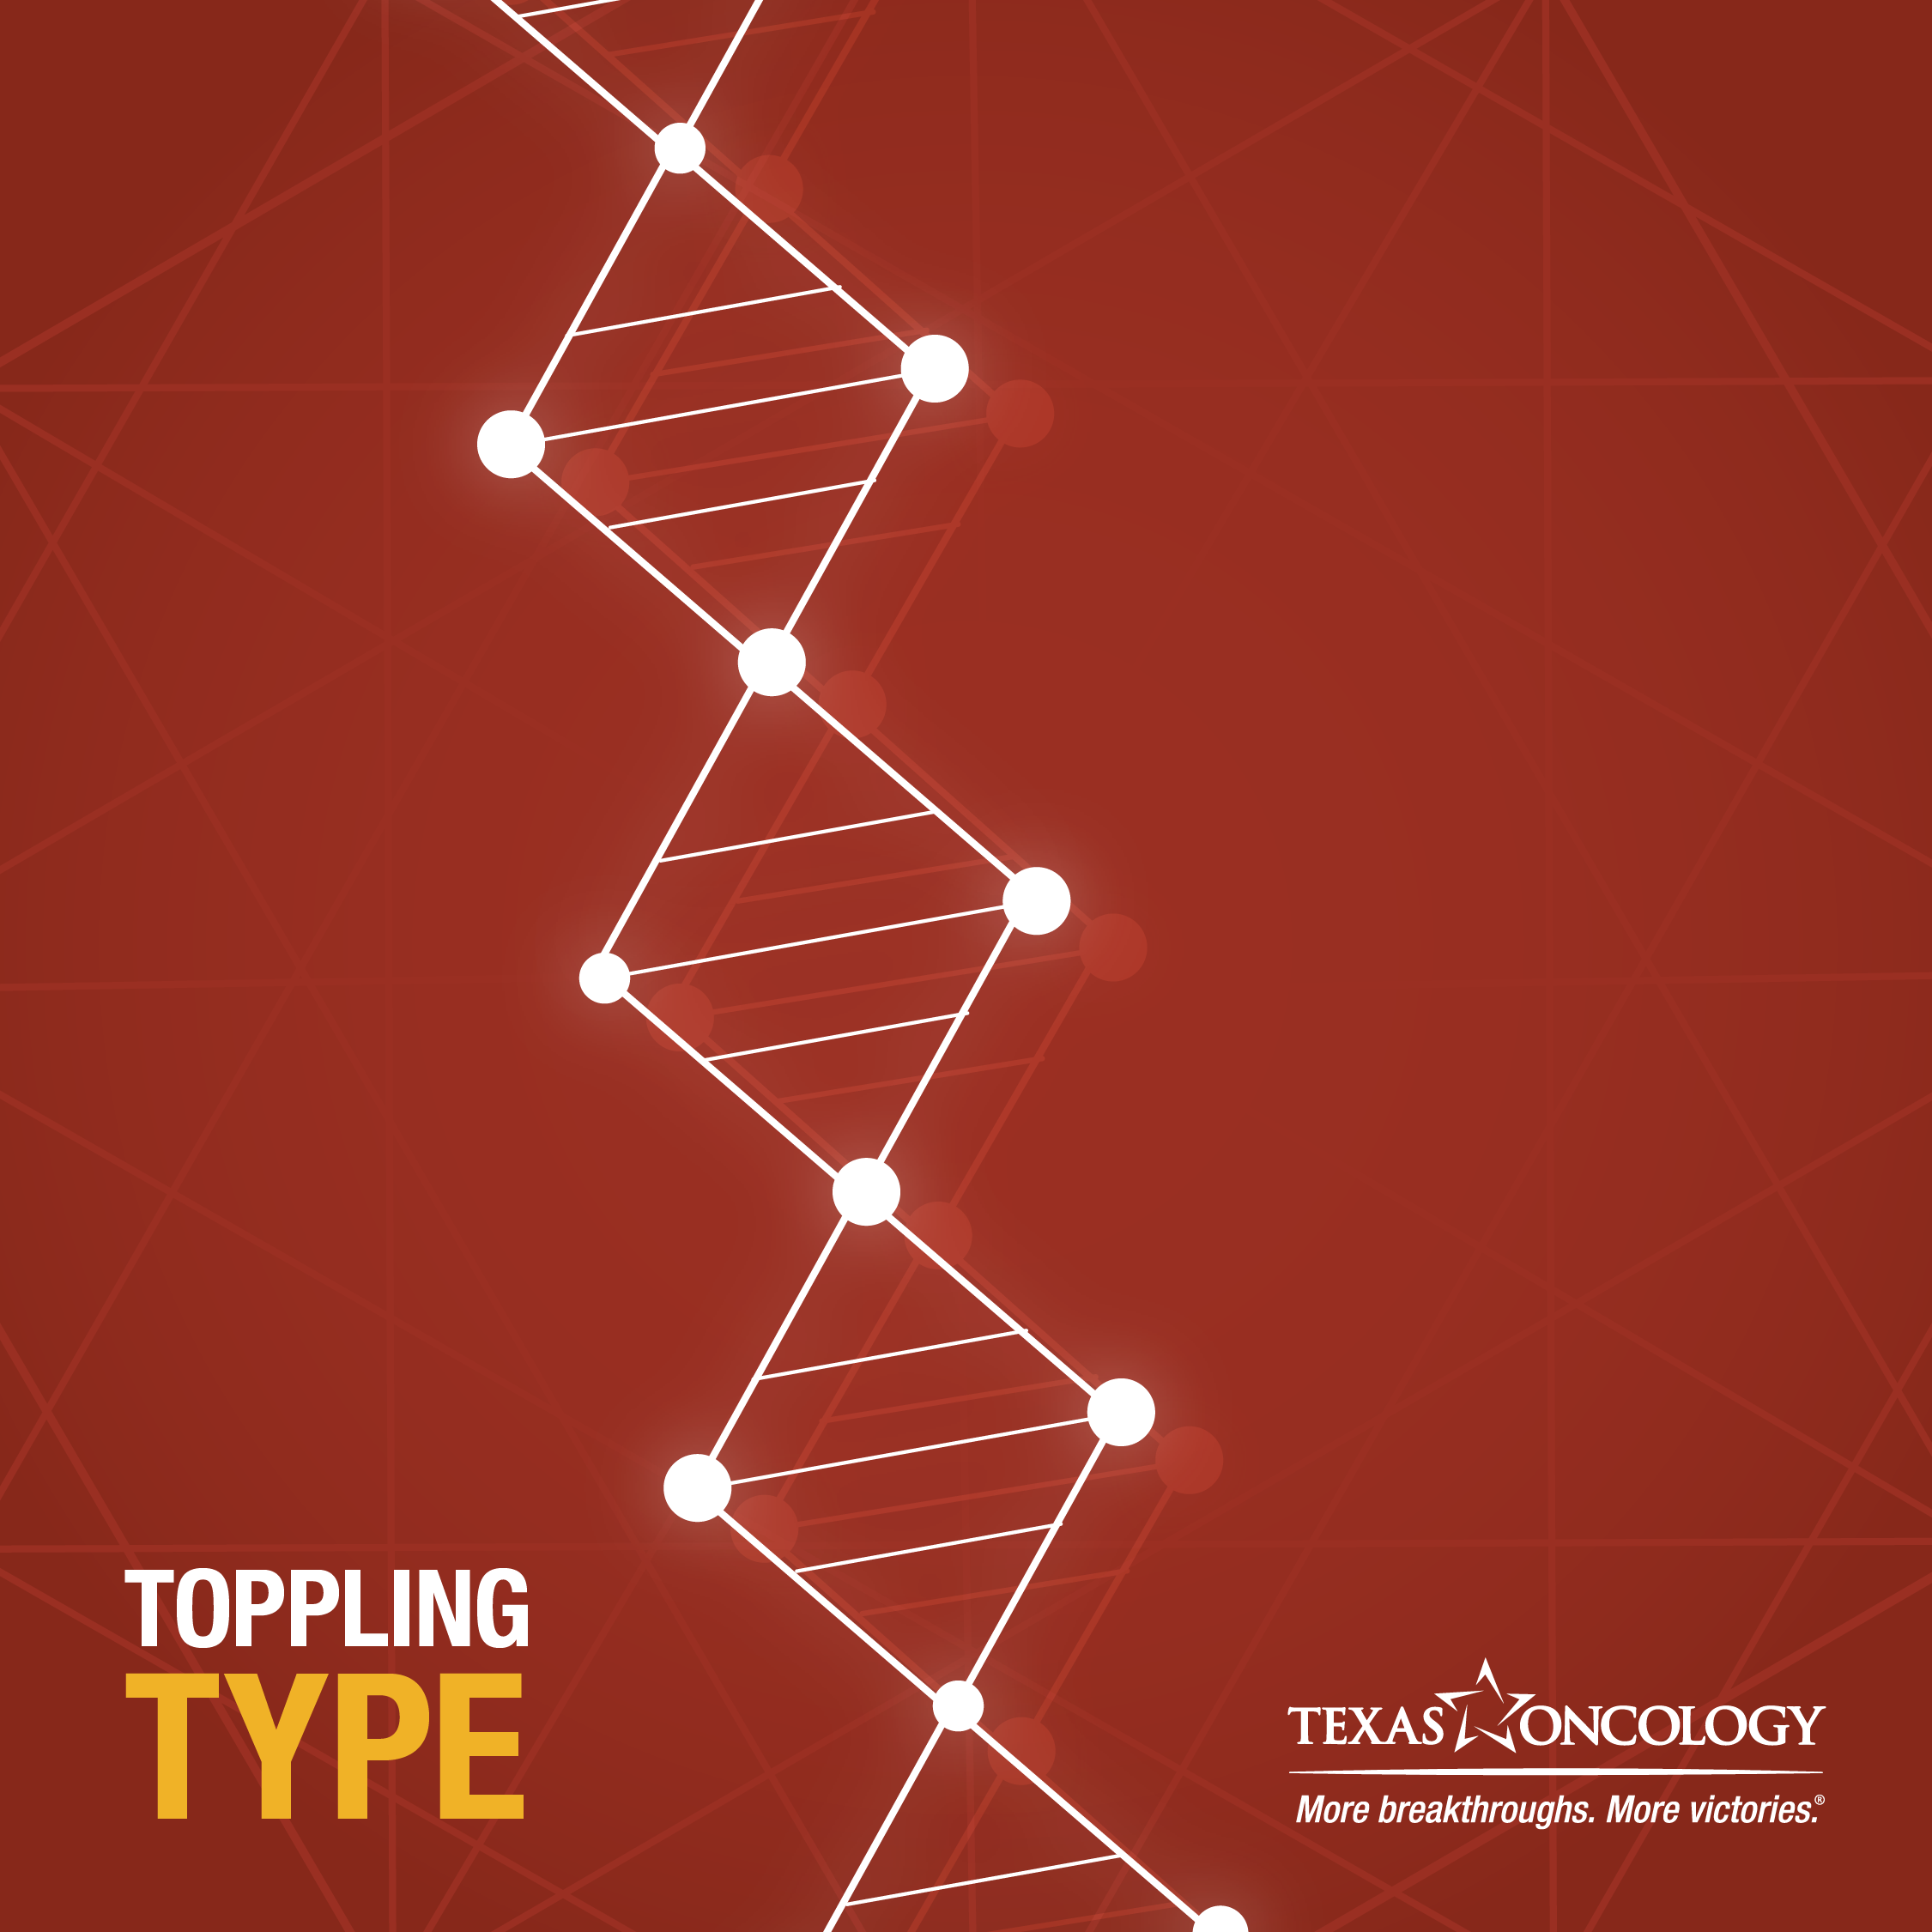 TXO_2018Trends_TopplingType.png